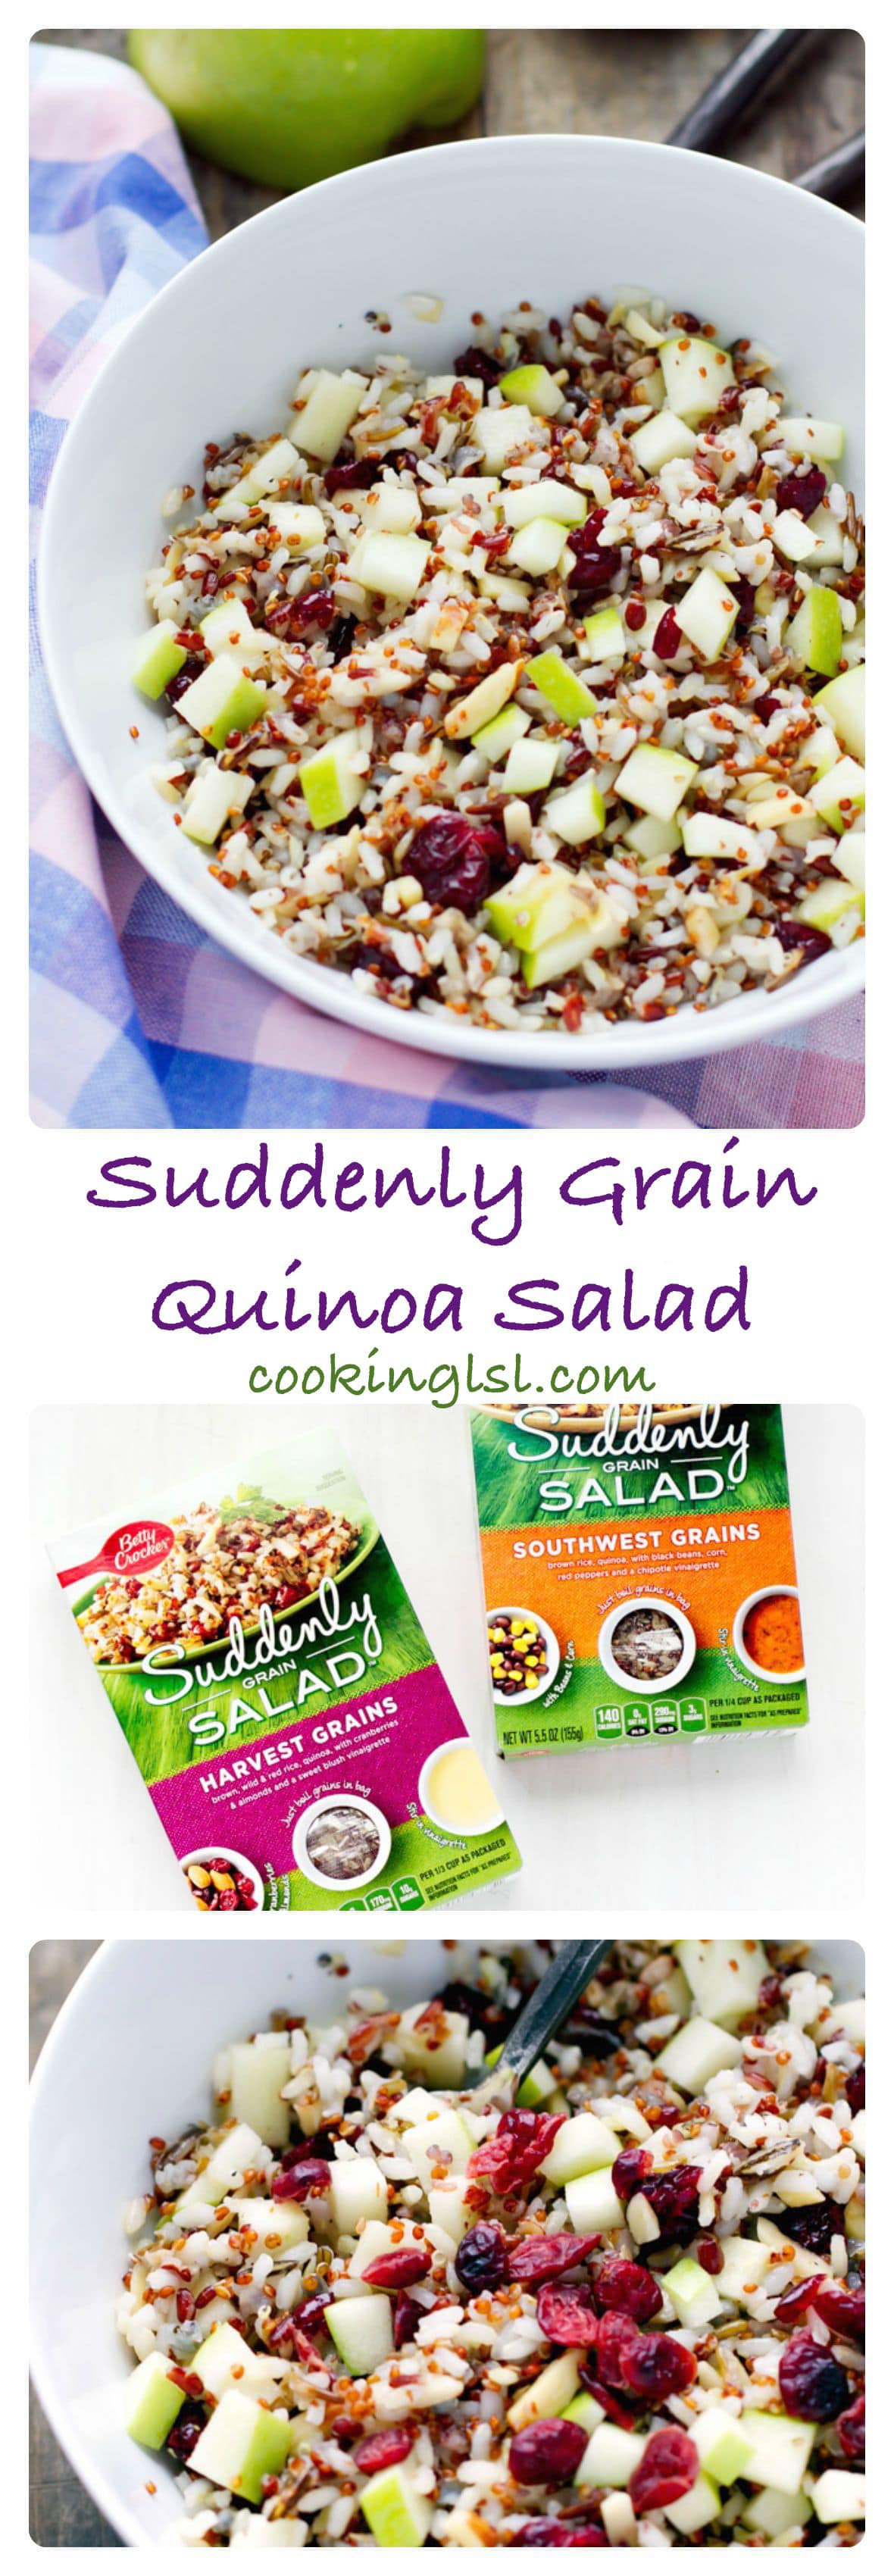 meal-prep-Quinoa-Cranberry-Apple-Salad-Suddenly-Grain-Harvest-Grains